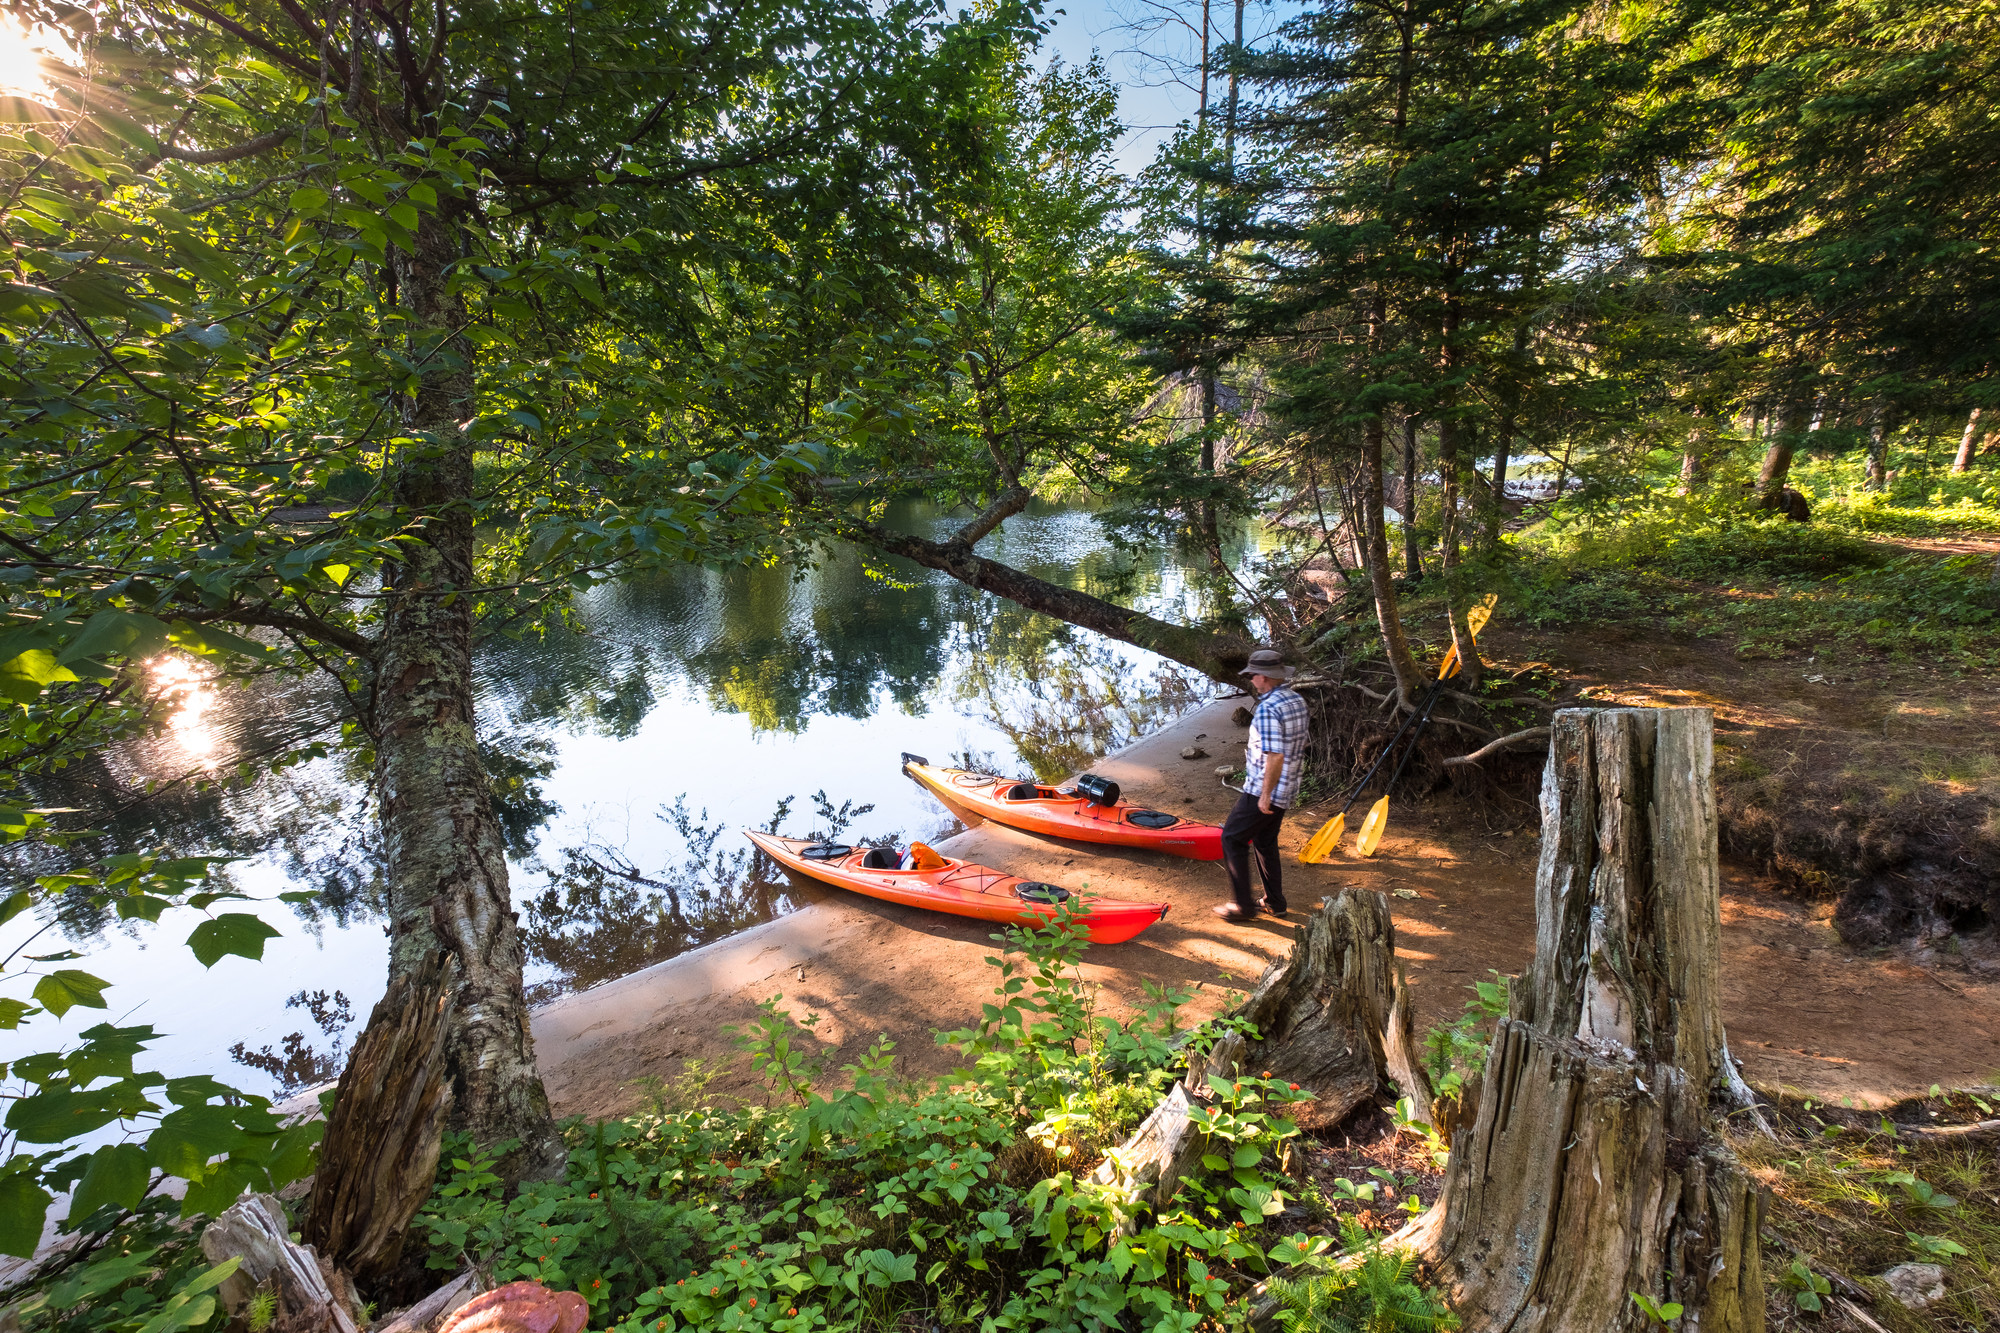 Two kayaks sitting on the shore of the river with a lush forest surrounding.